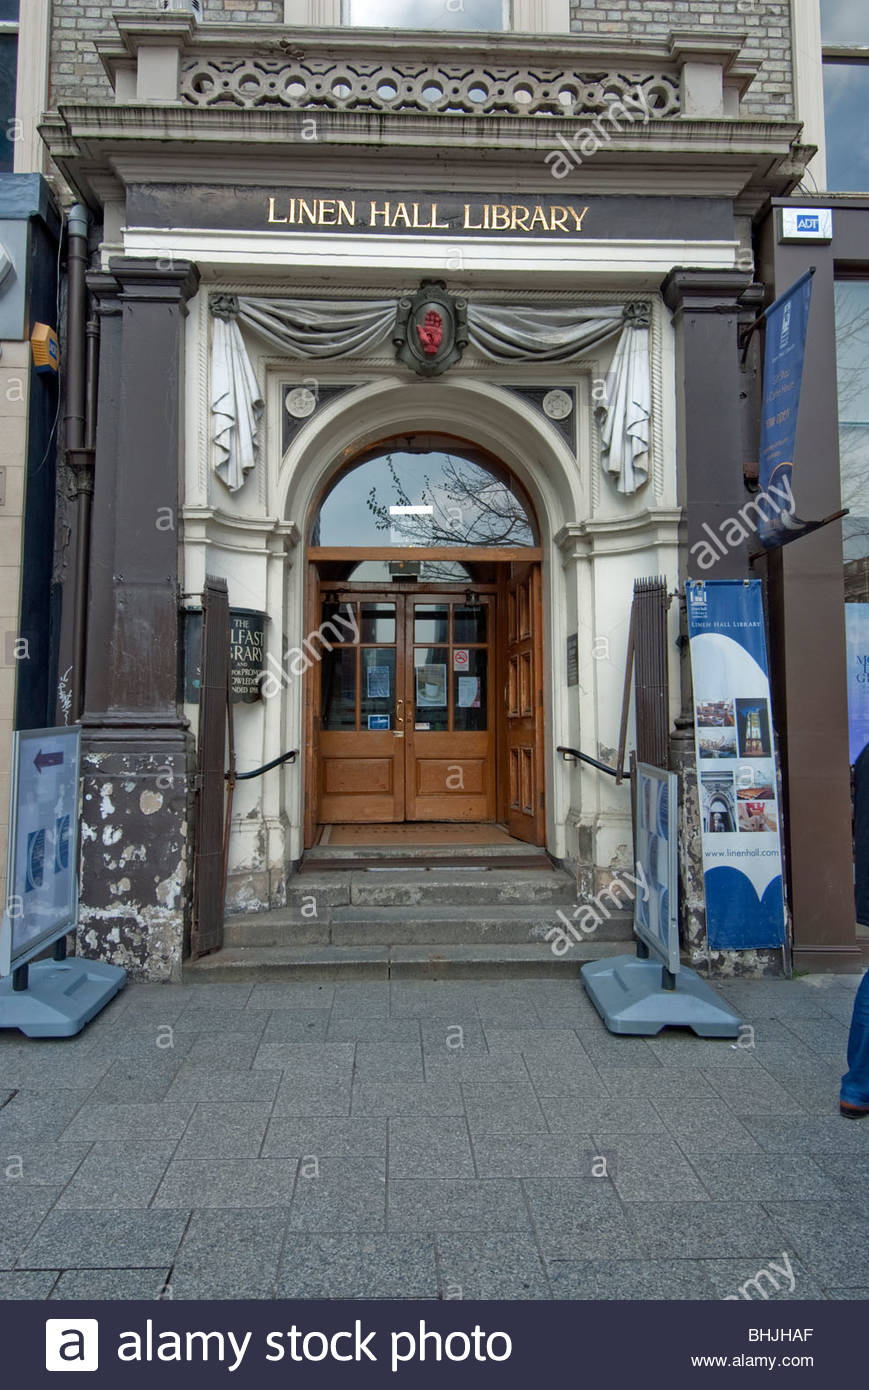 Linen Hall Library Belfast, Front enterance to the Linen Hall Library, Belfast. Ireland's ...